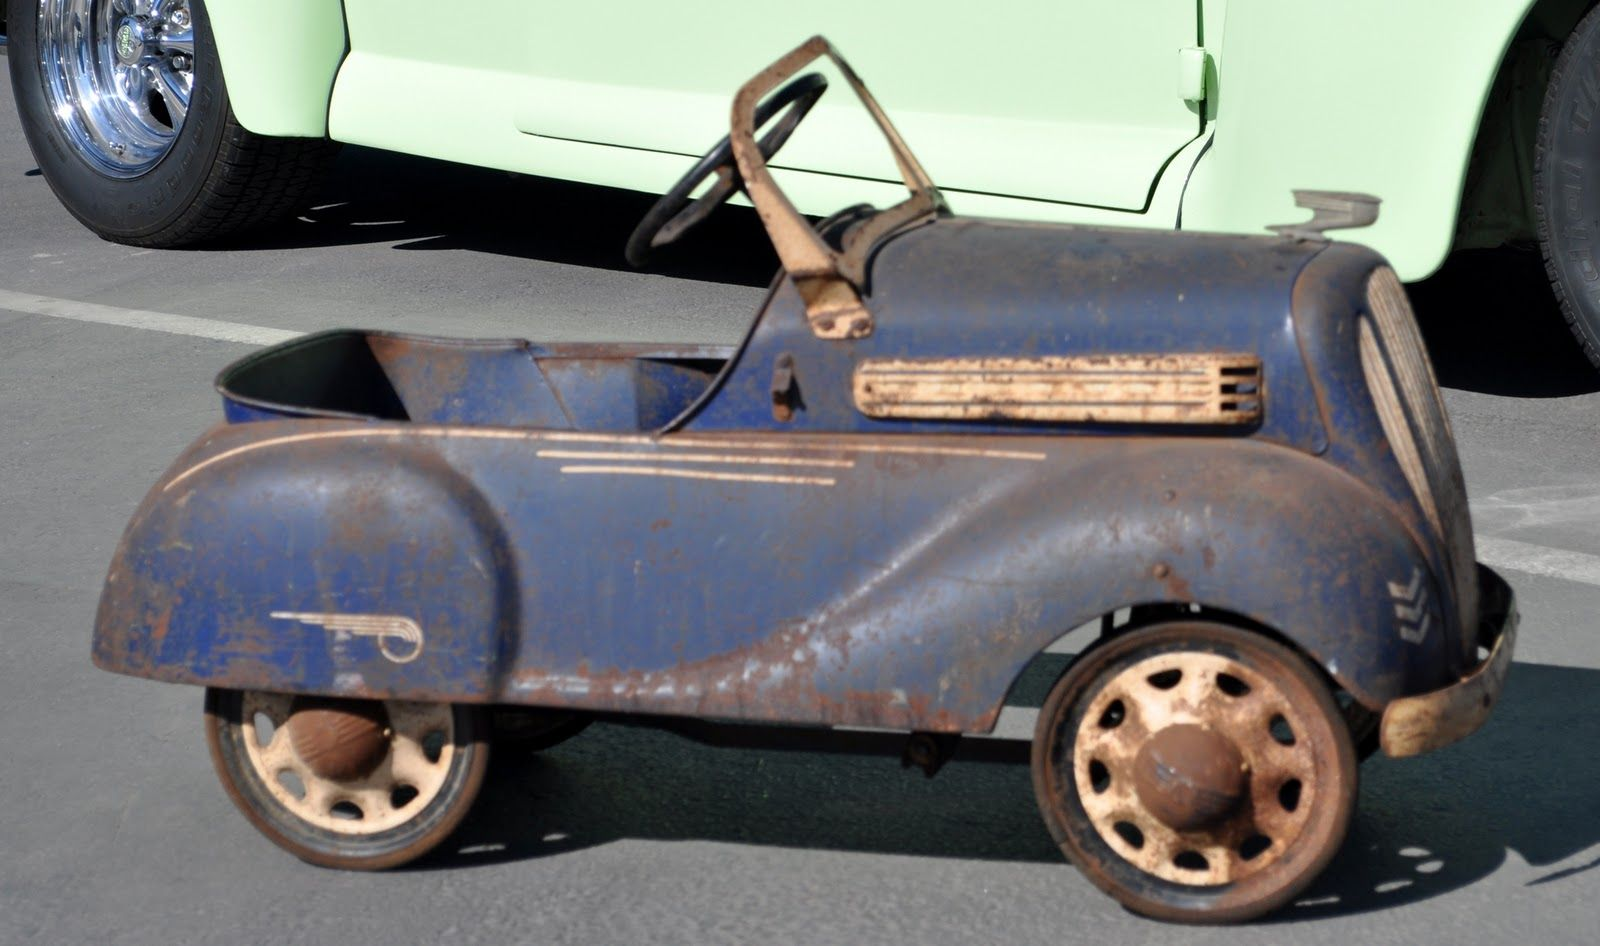 pedal cars for sale | Just a car guy : One cool pedal car | Old ...